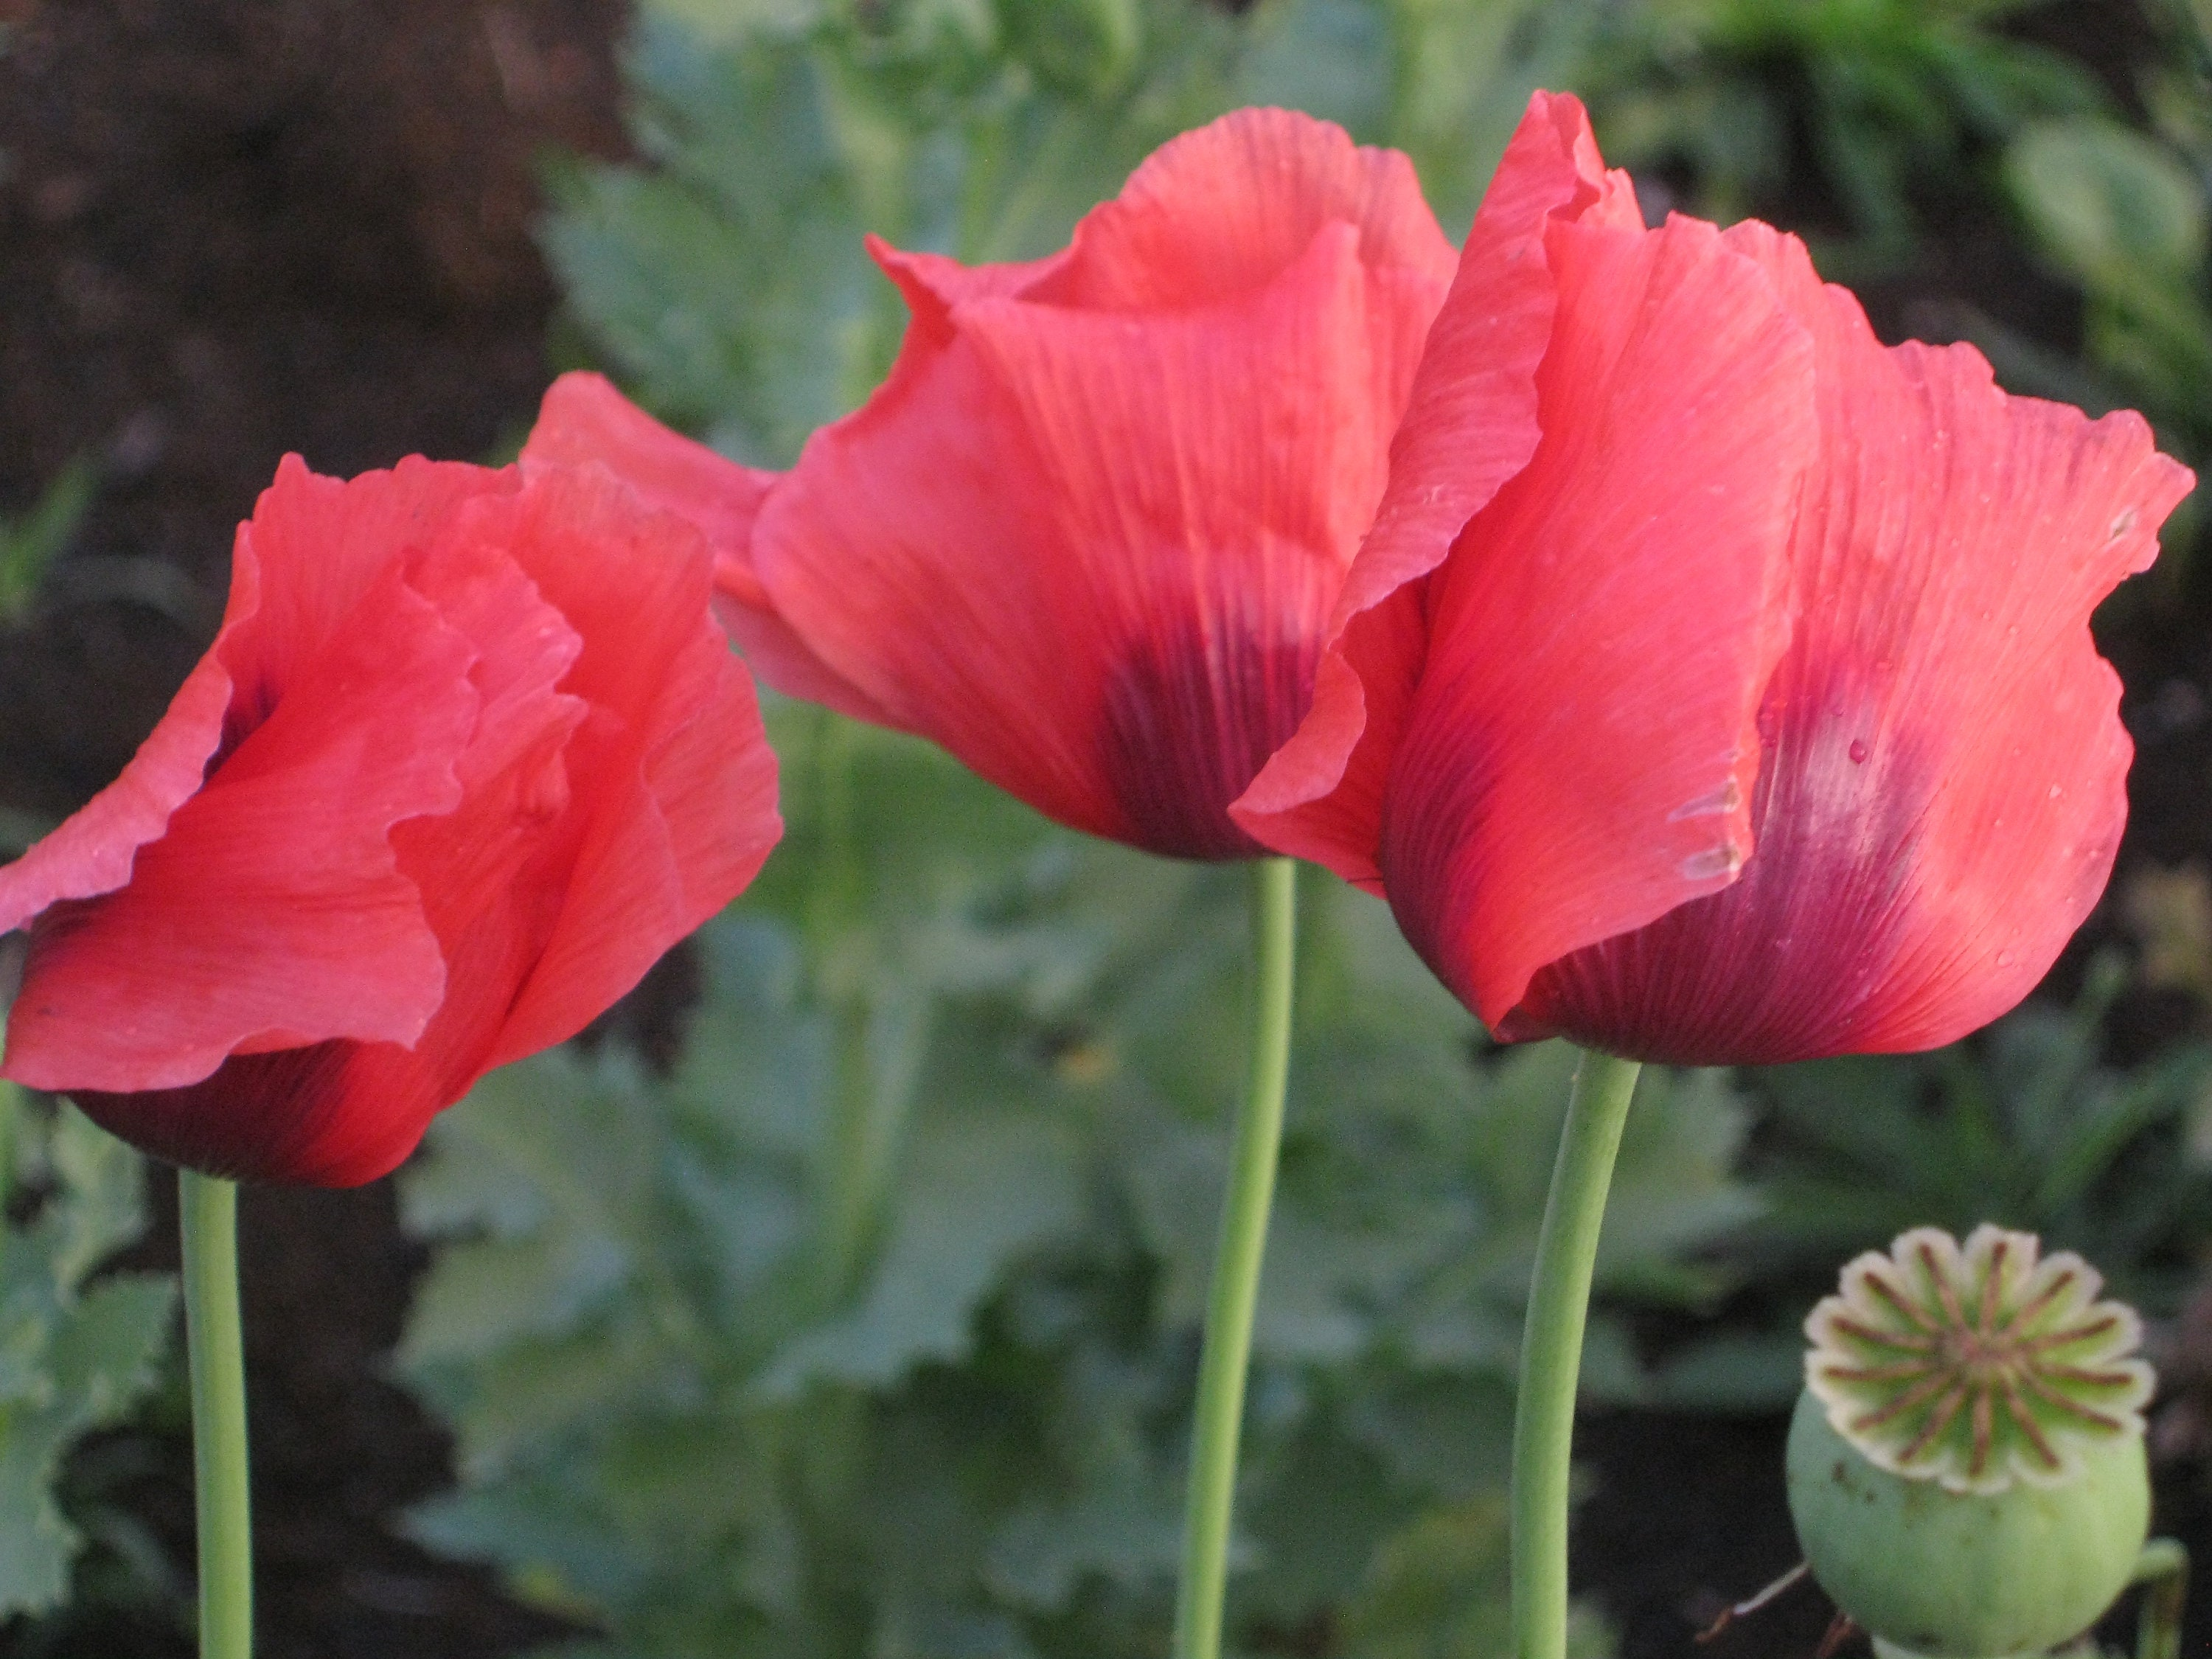 Red Turkish Papaver Somniferum Poppy Flower Seeds 1000